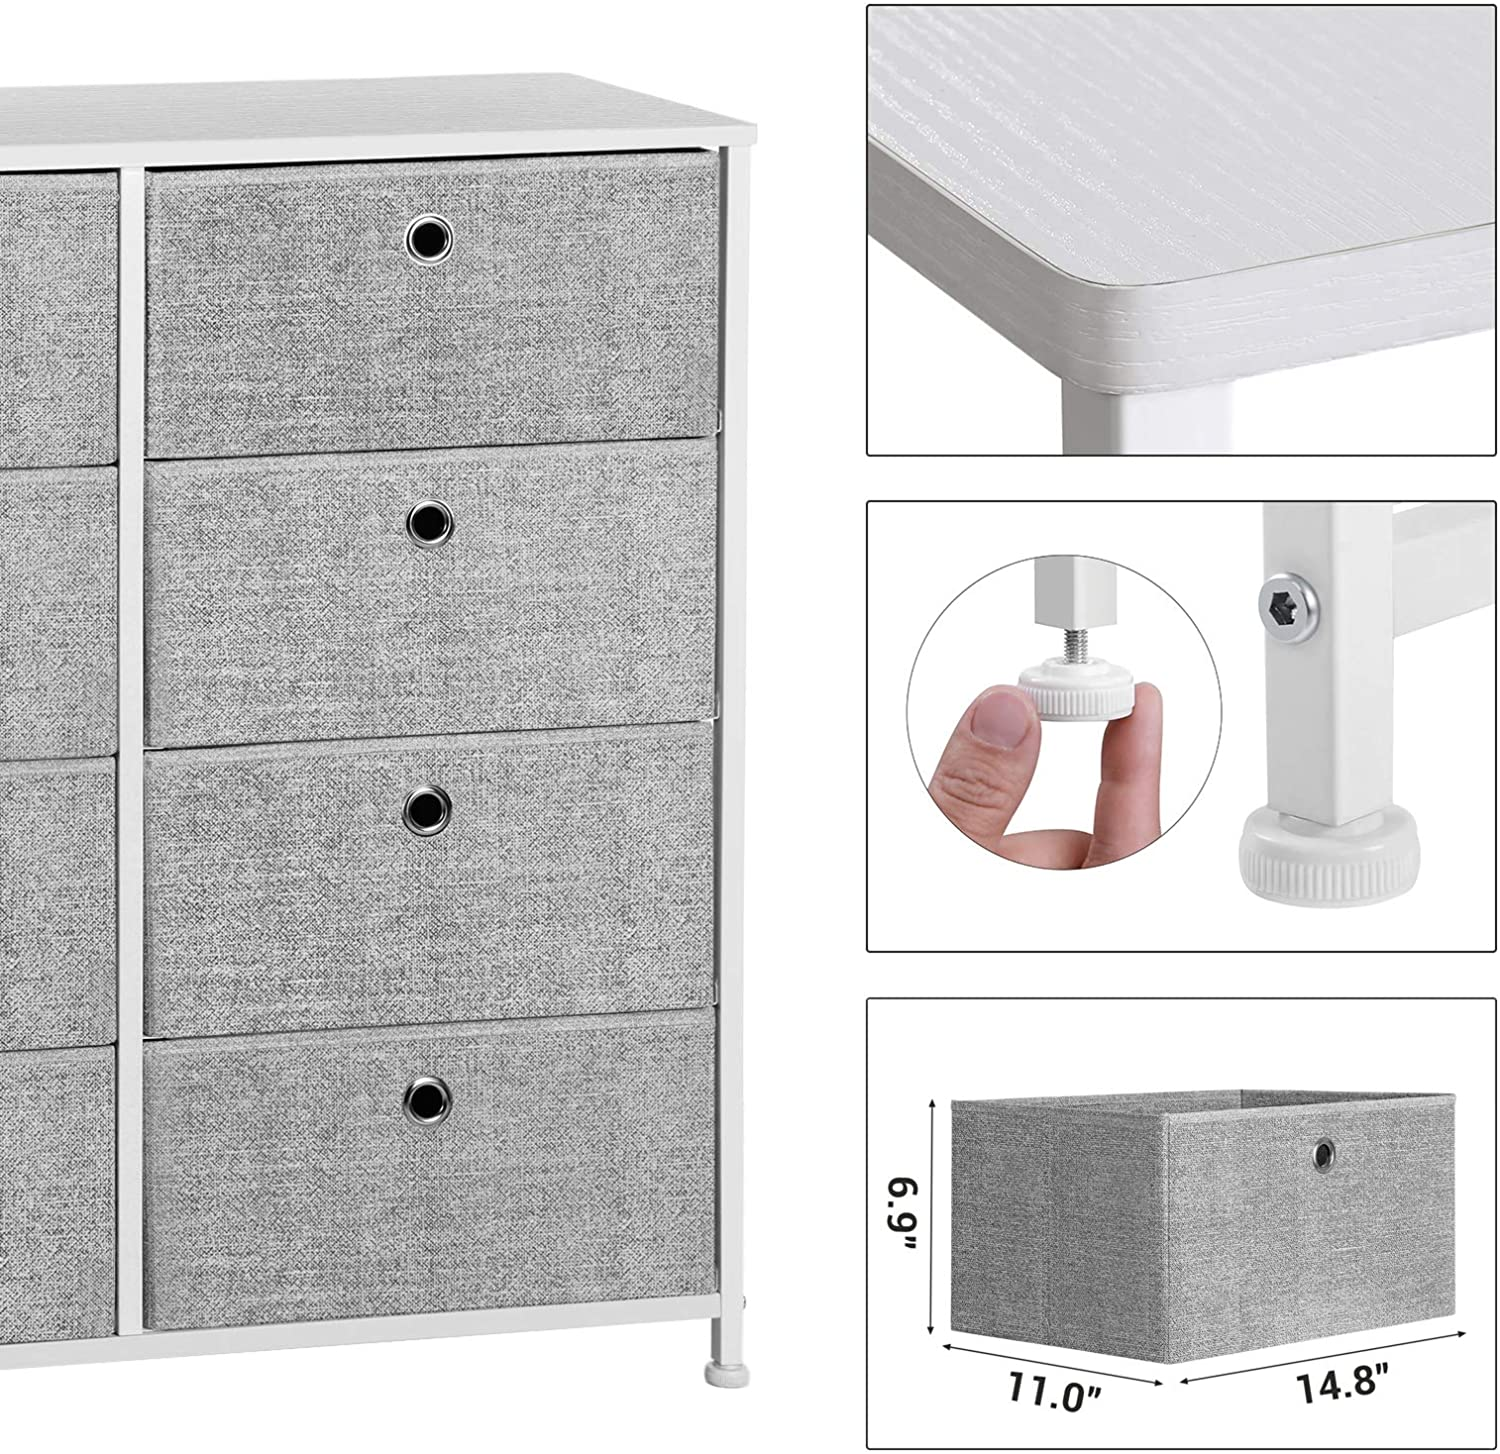 SONGMICS 4-Tier Storage Dresser with 8 Easy Pull Fabric Drawers and Wooden Tabletop for Closets, Nursery, Dorm Room, Light Gray and White ULTS24W